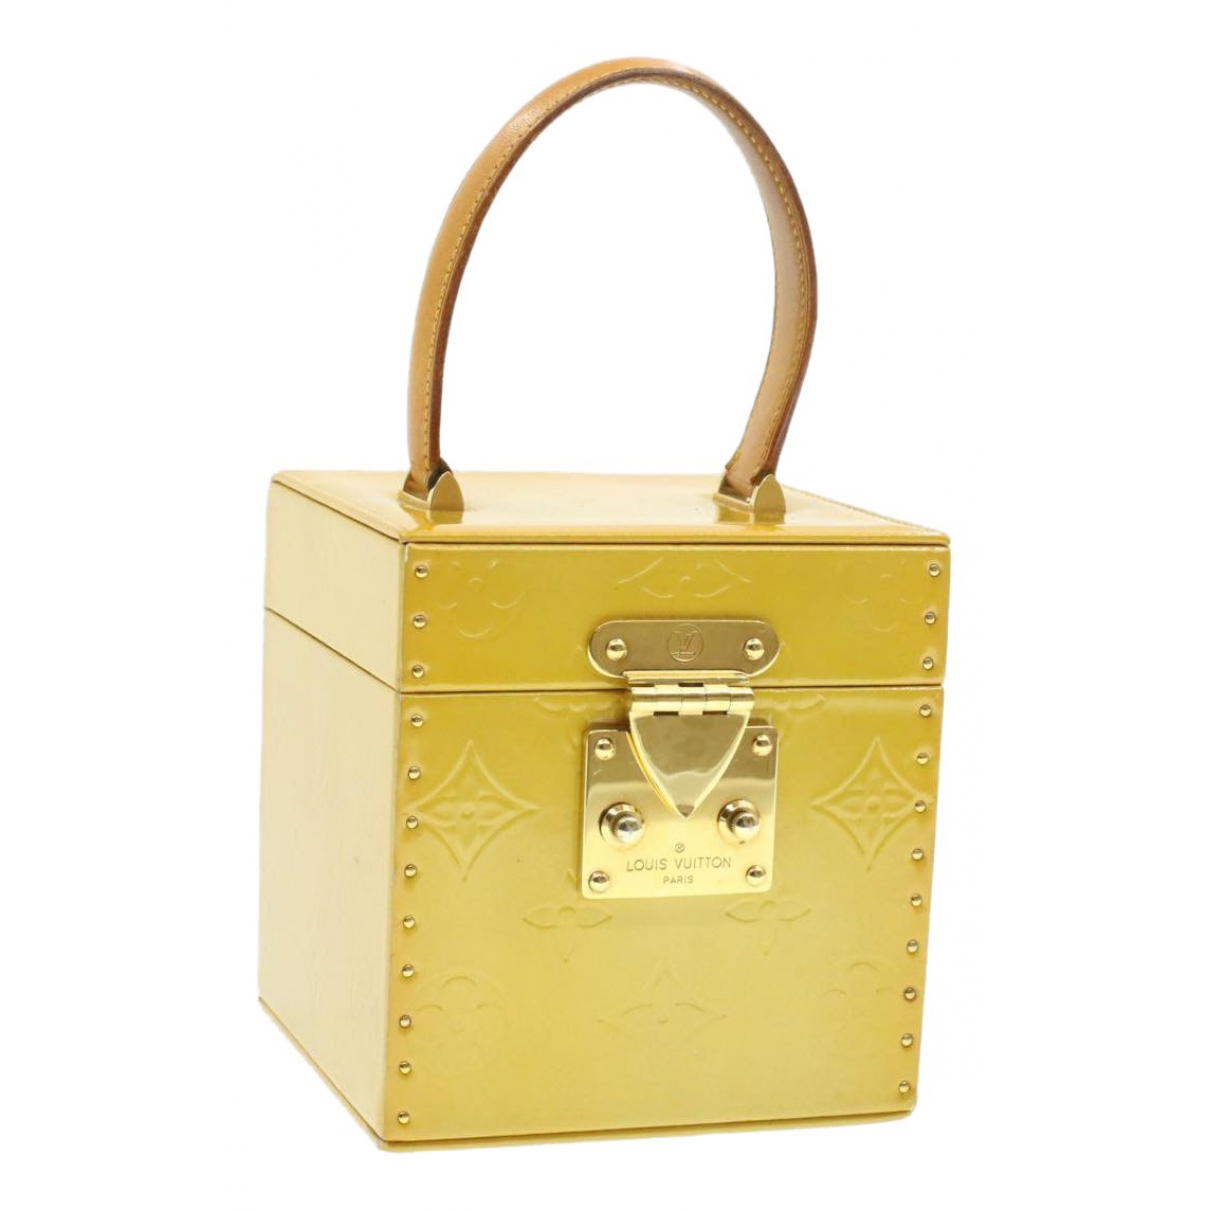 Louis Vuitton Bleecker Yellow Patent leather handbag for Women N